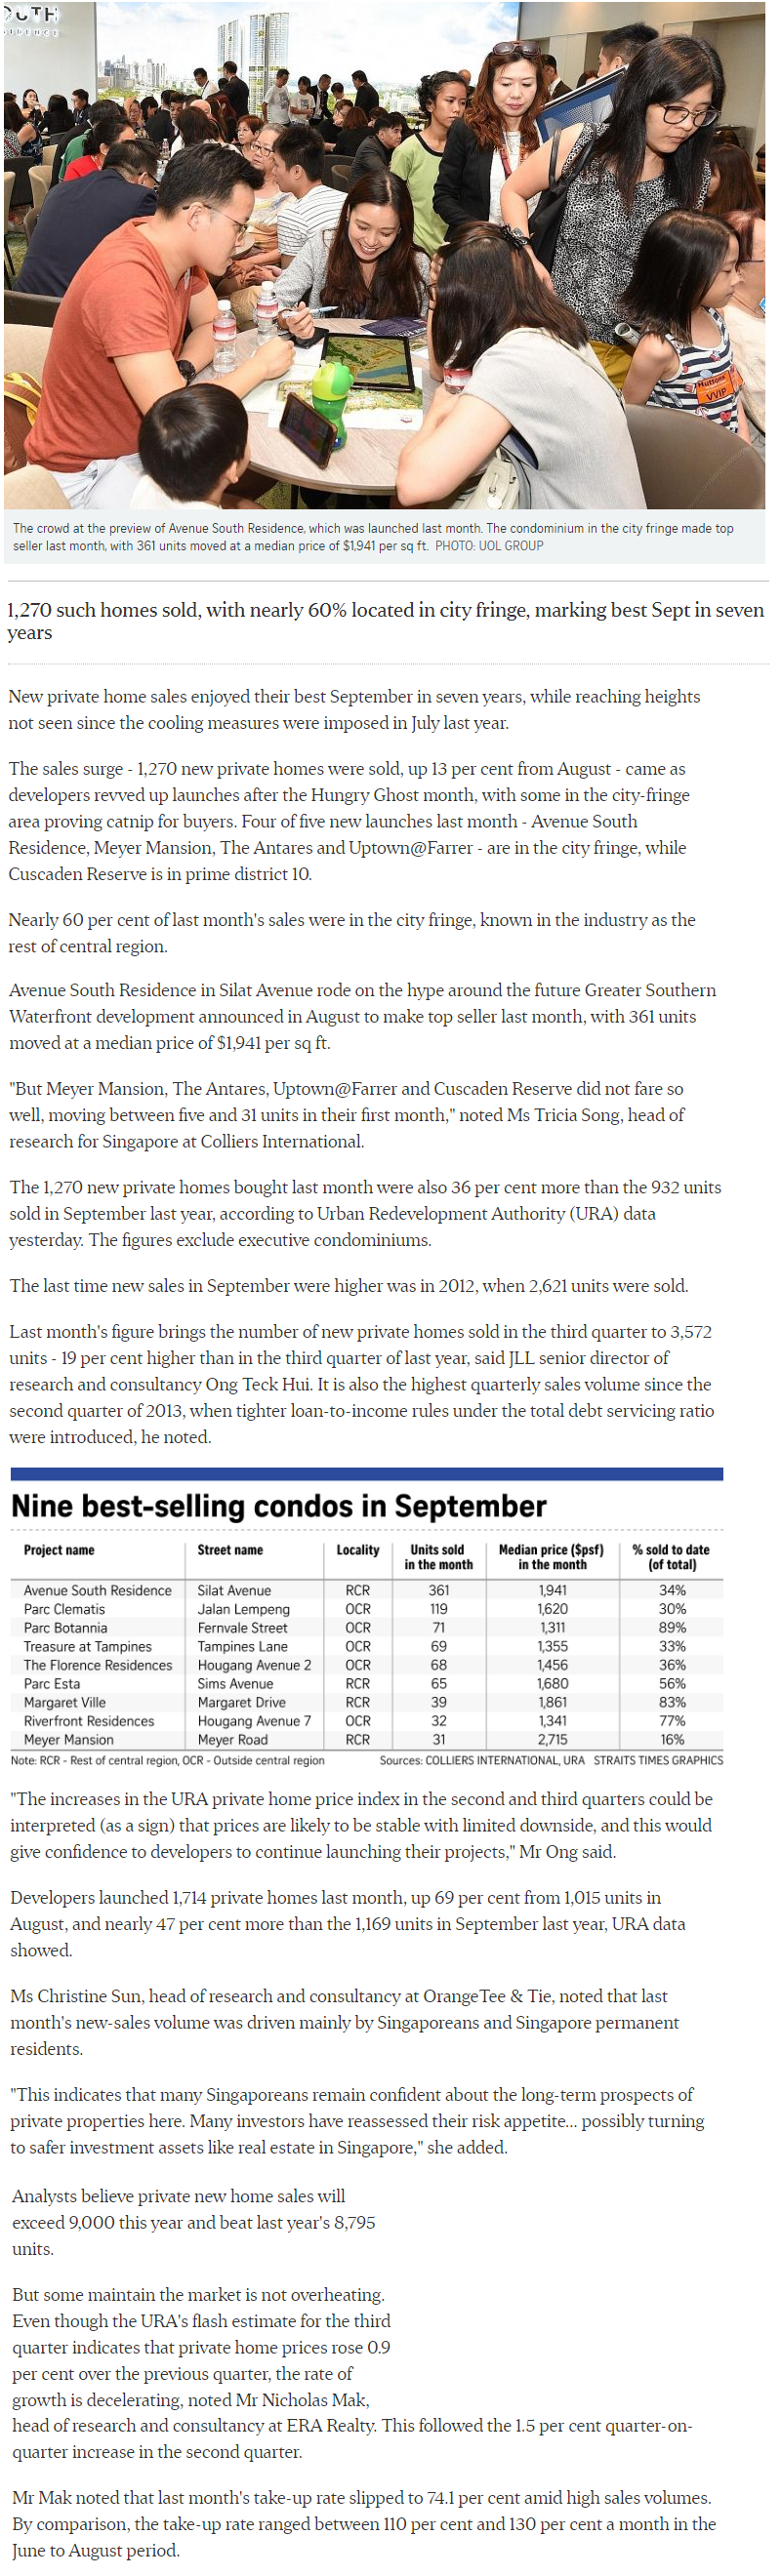 Parc Greenwich - New private Home Sales Hit A Hight In September